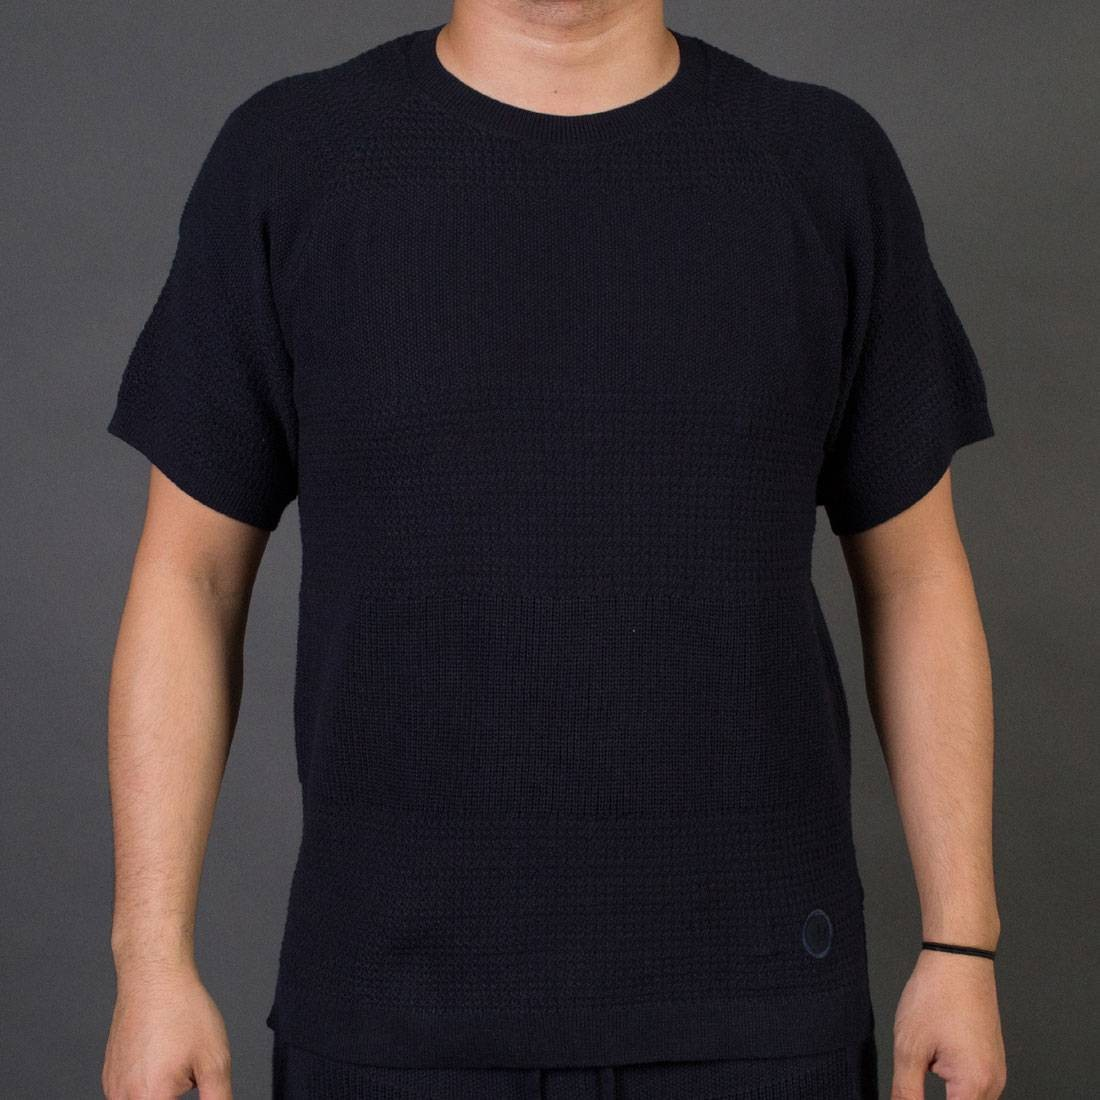 on sale 6a735 4f77e Adidas x Wings + Horns Men Linear Tee navy night navy